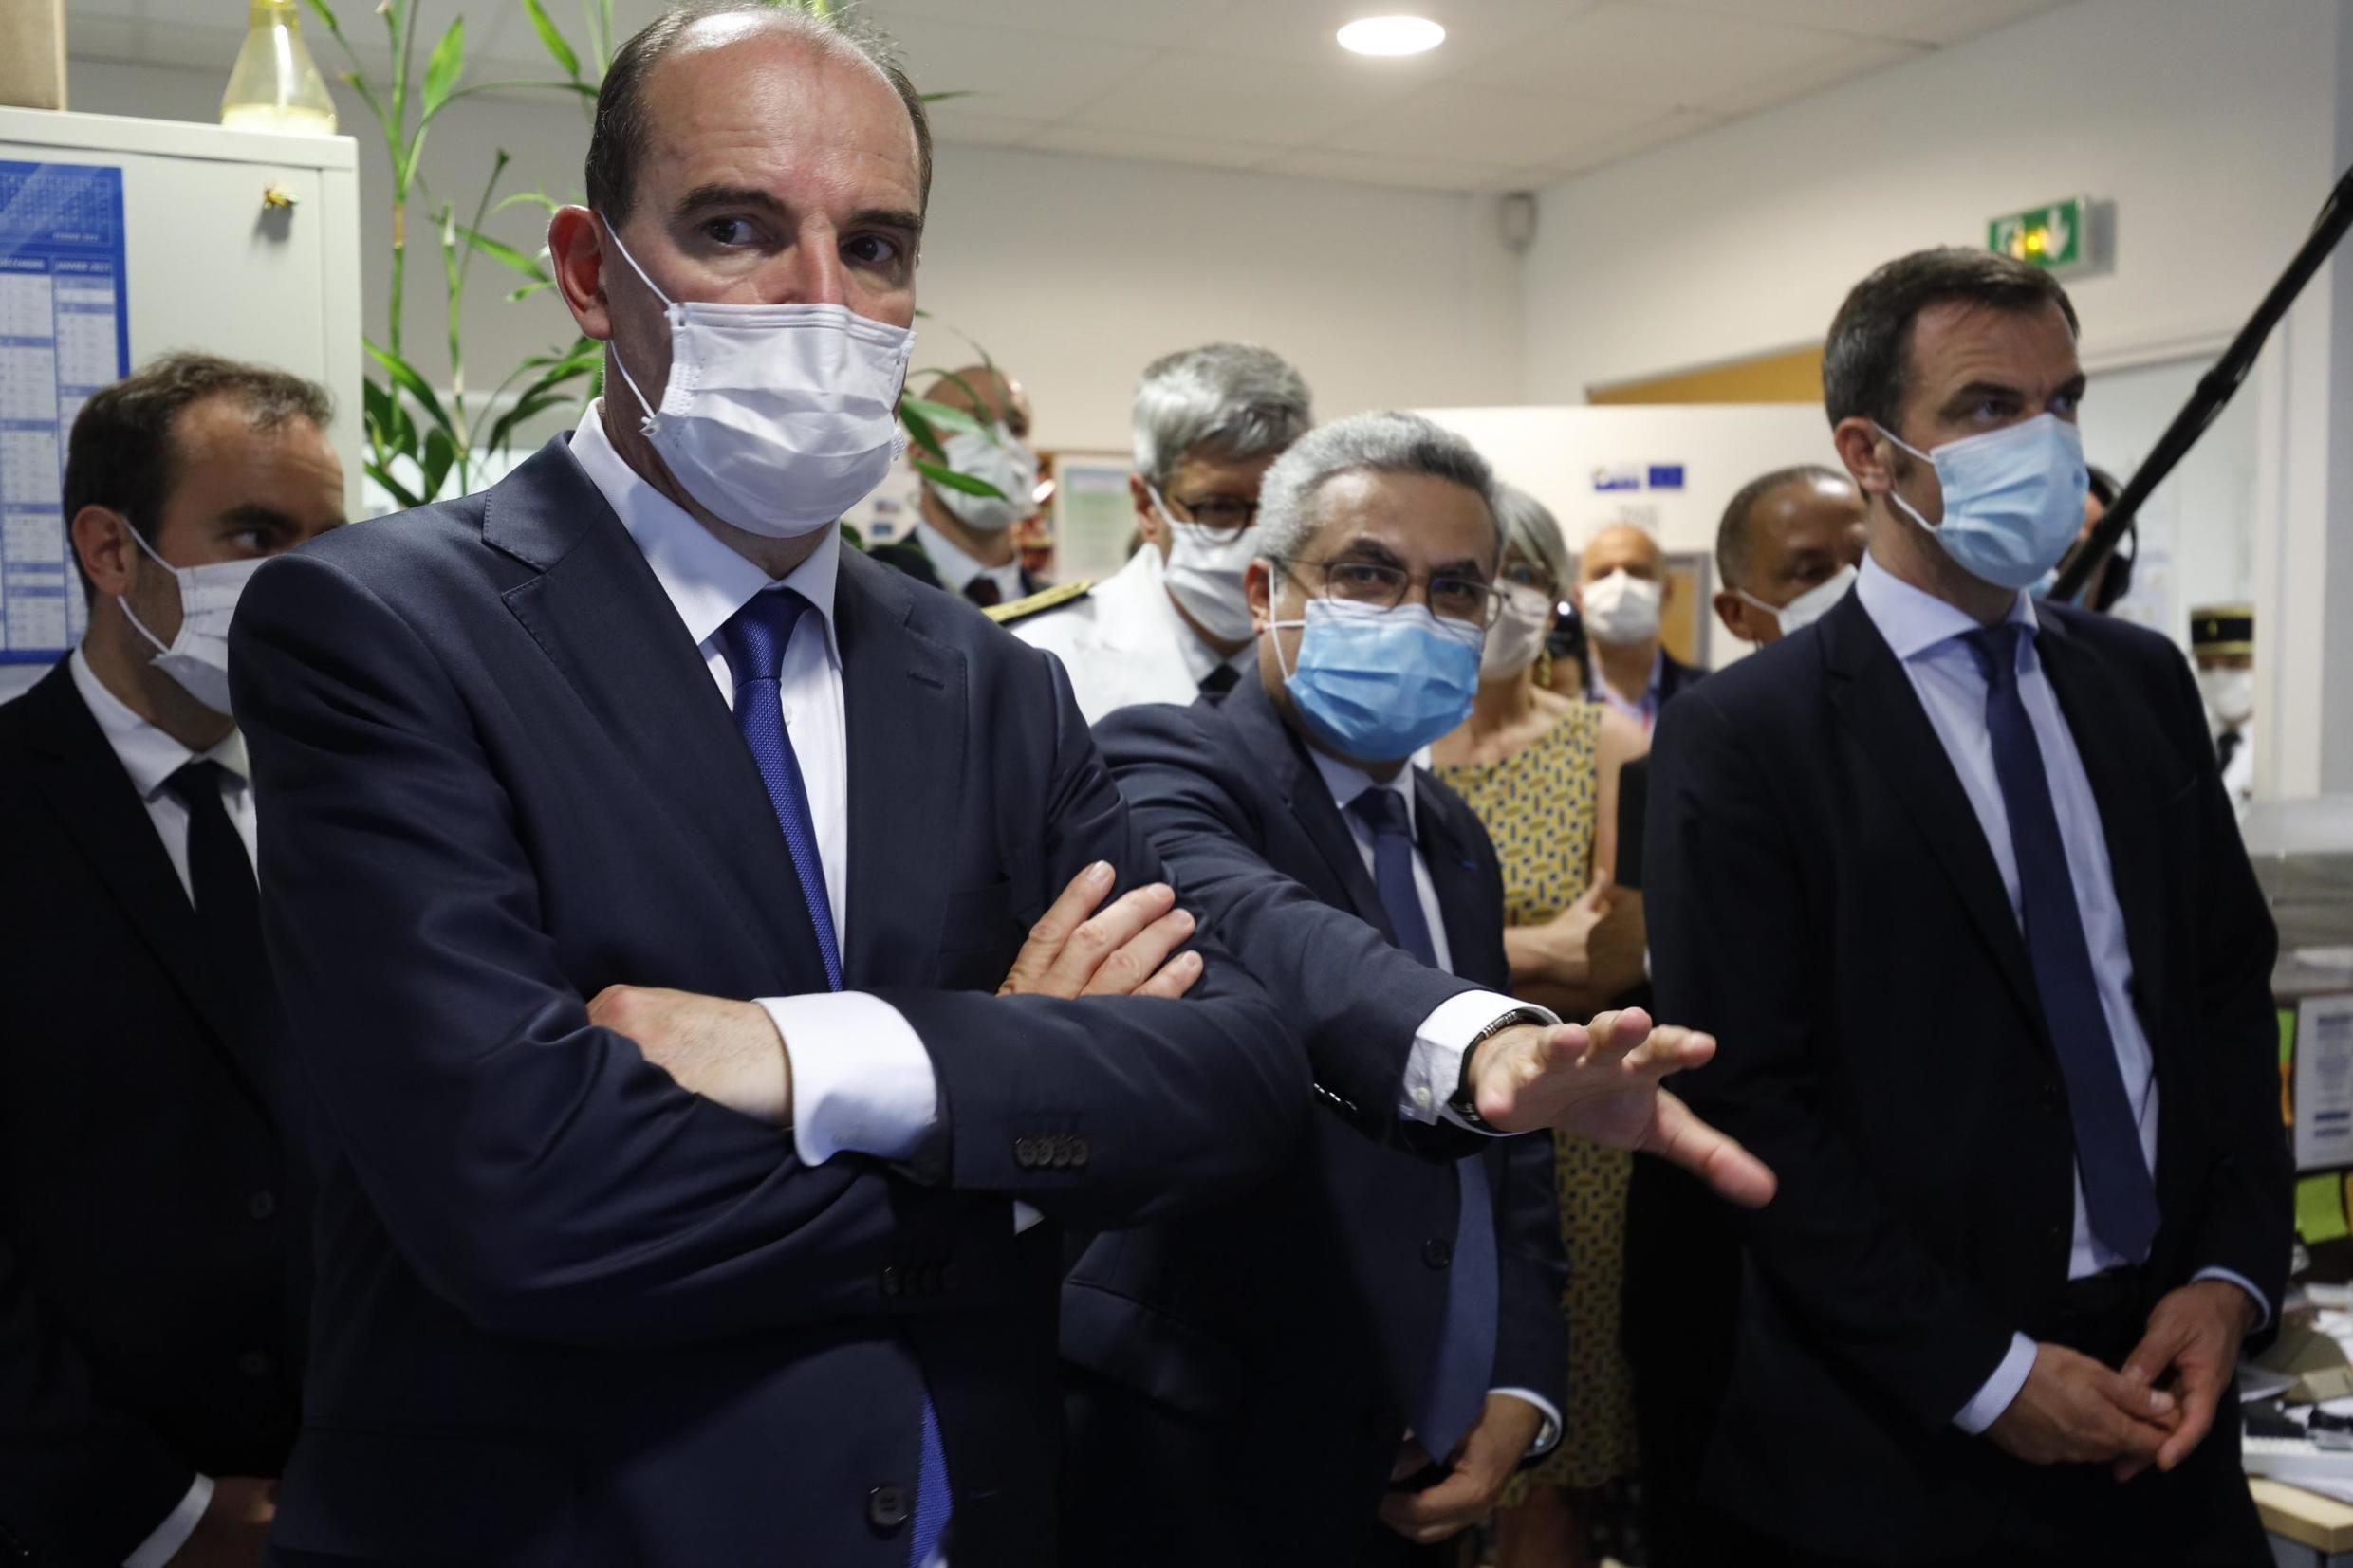 Prime Minister Jean Castex and Health Minister Olivier Véran visit Pasteur Institute Lab in Cayenne, Guiana. 12 July 2020.